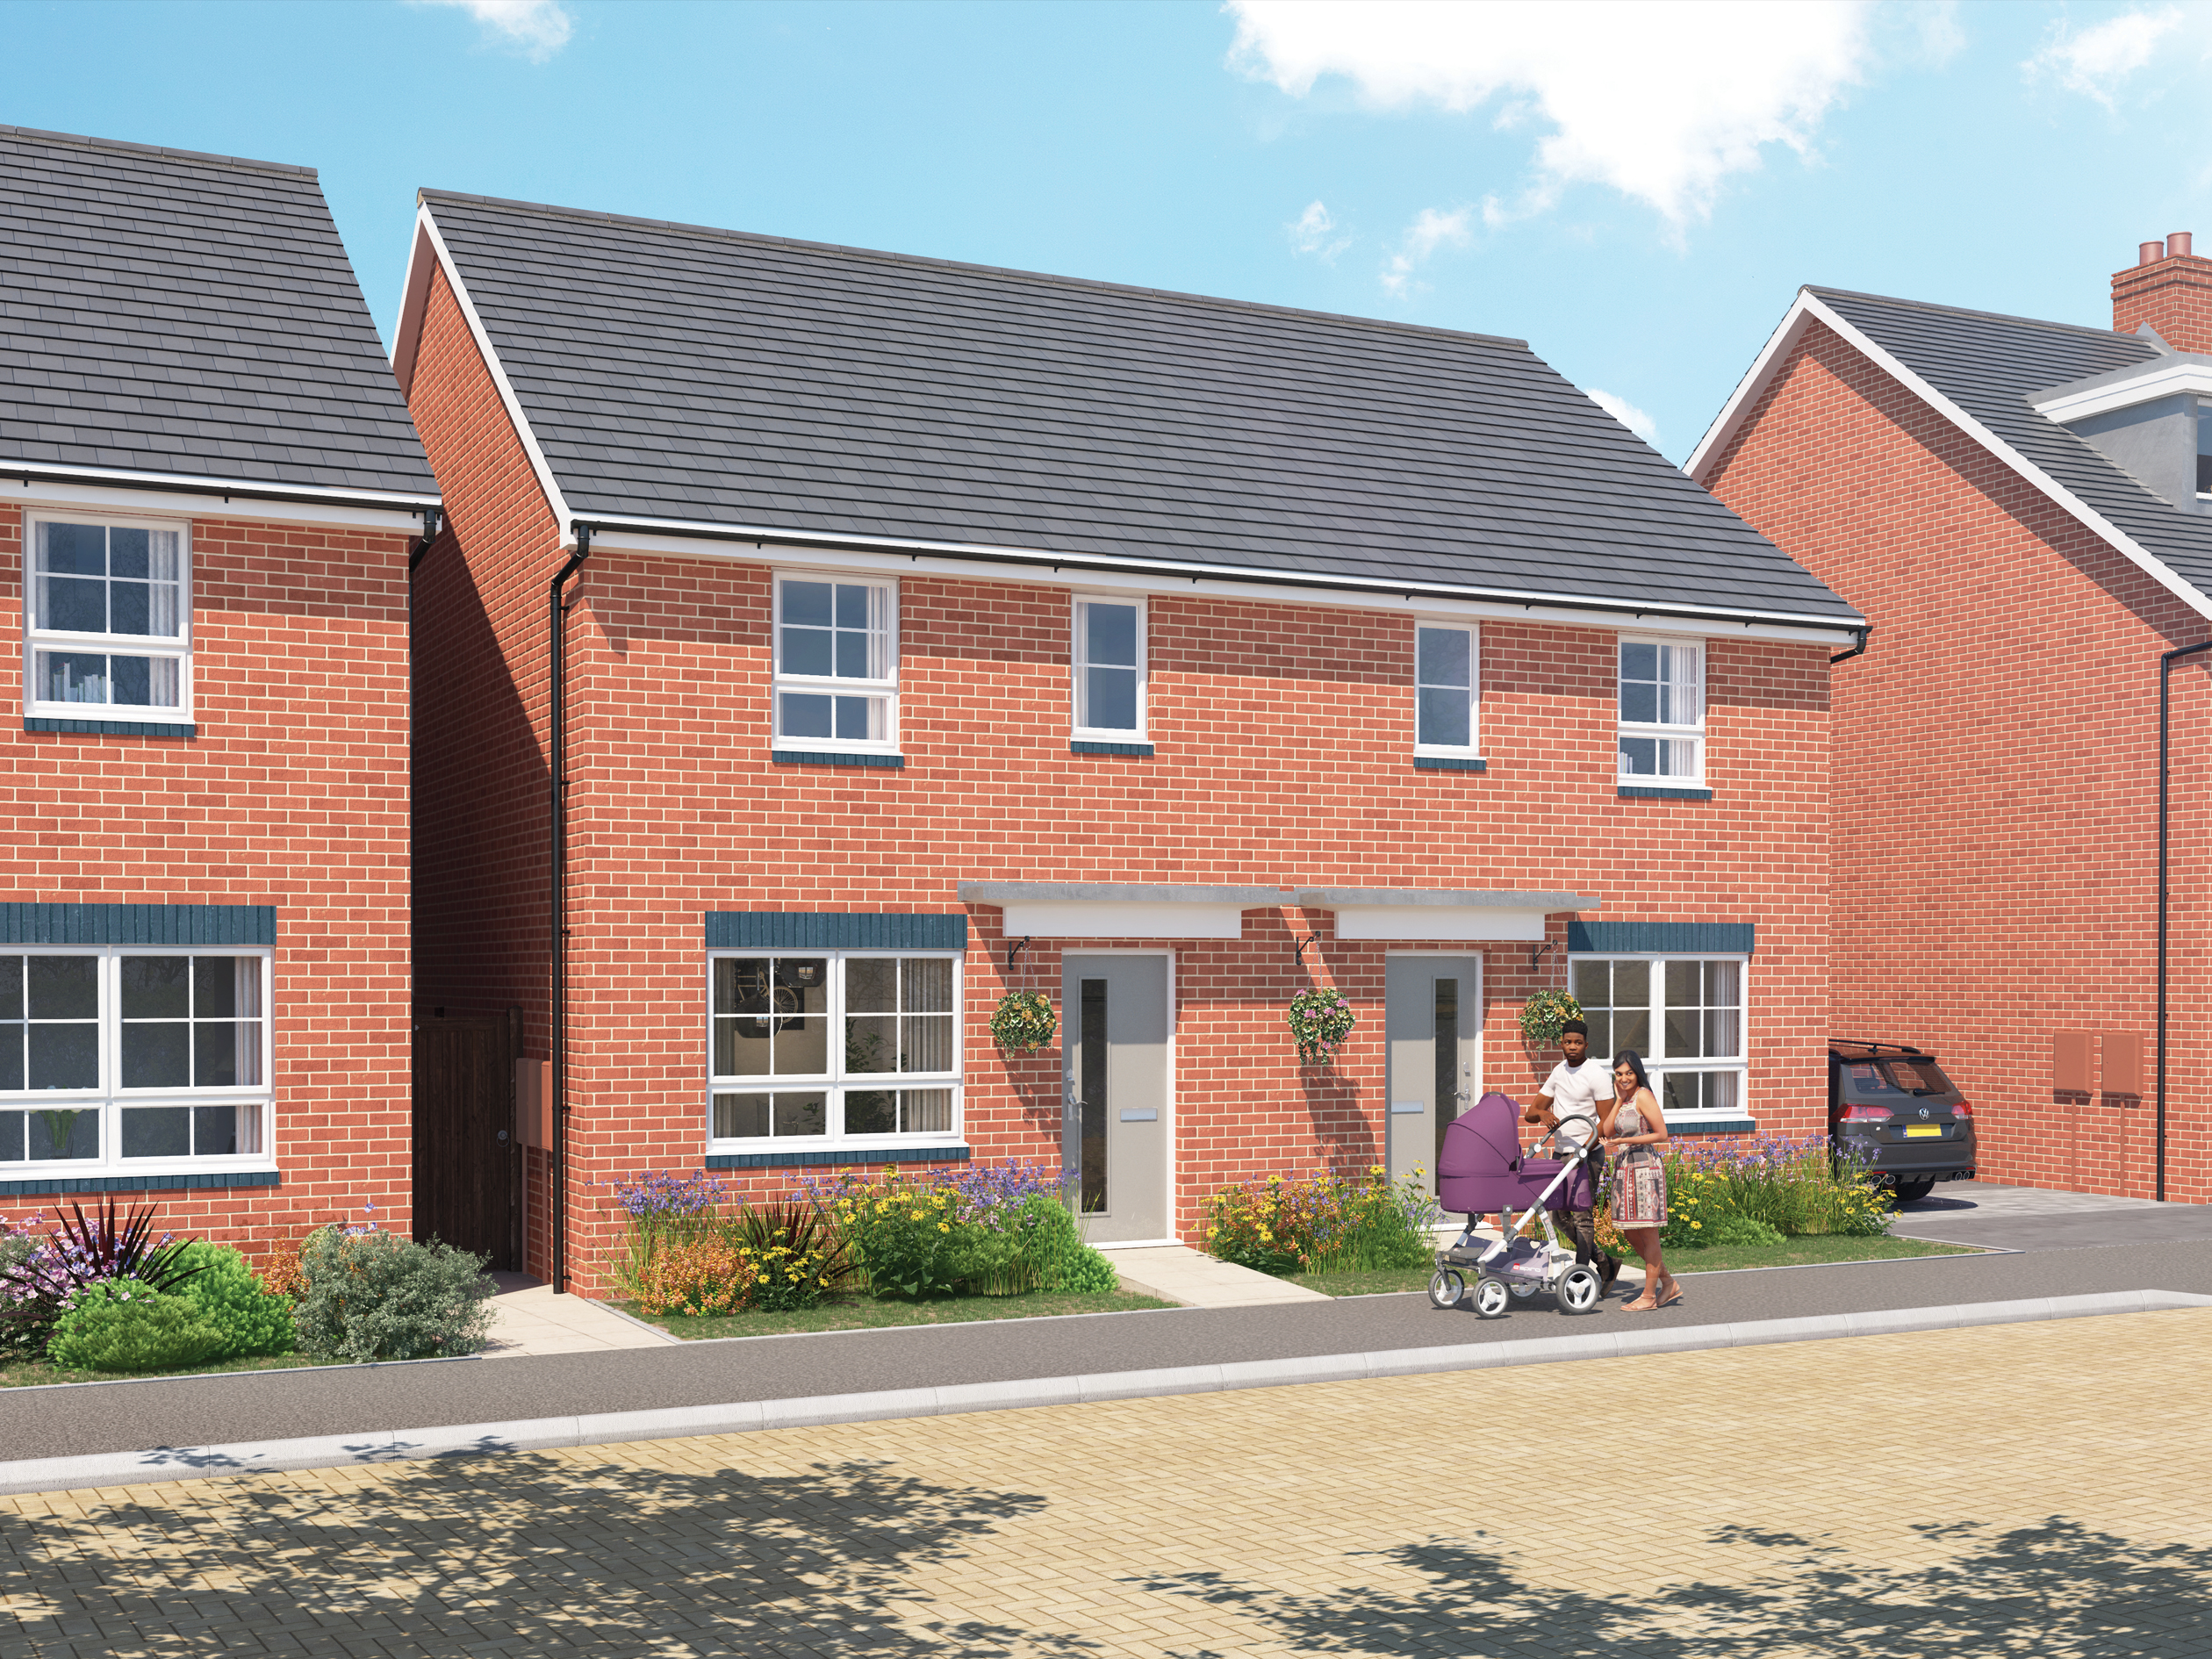 Outside view of the Maidstone. 3 bed home. CGI.